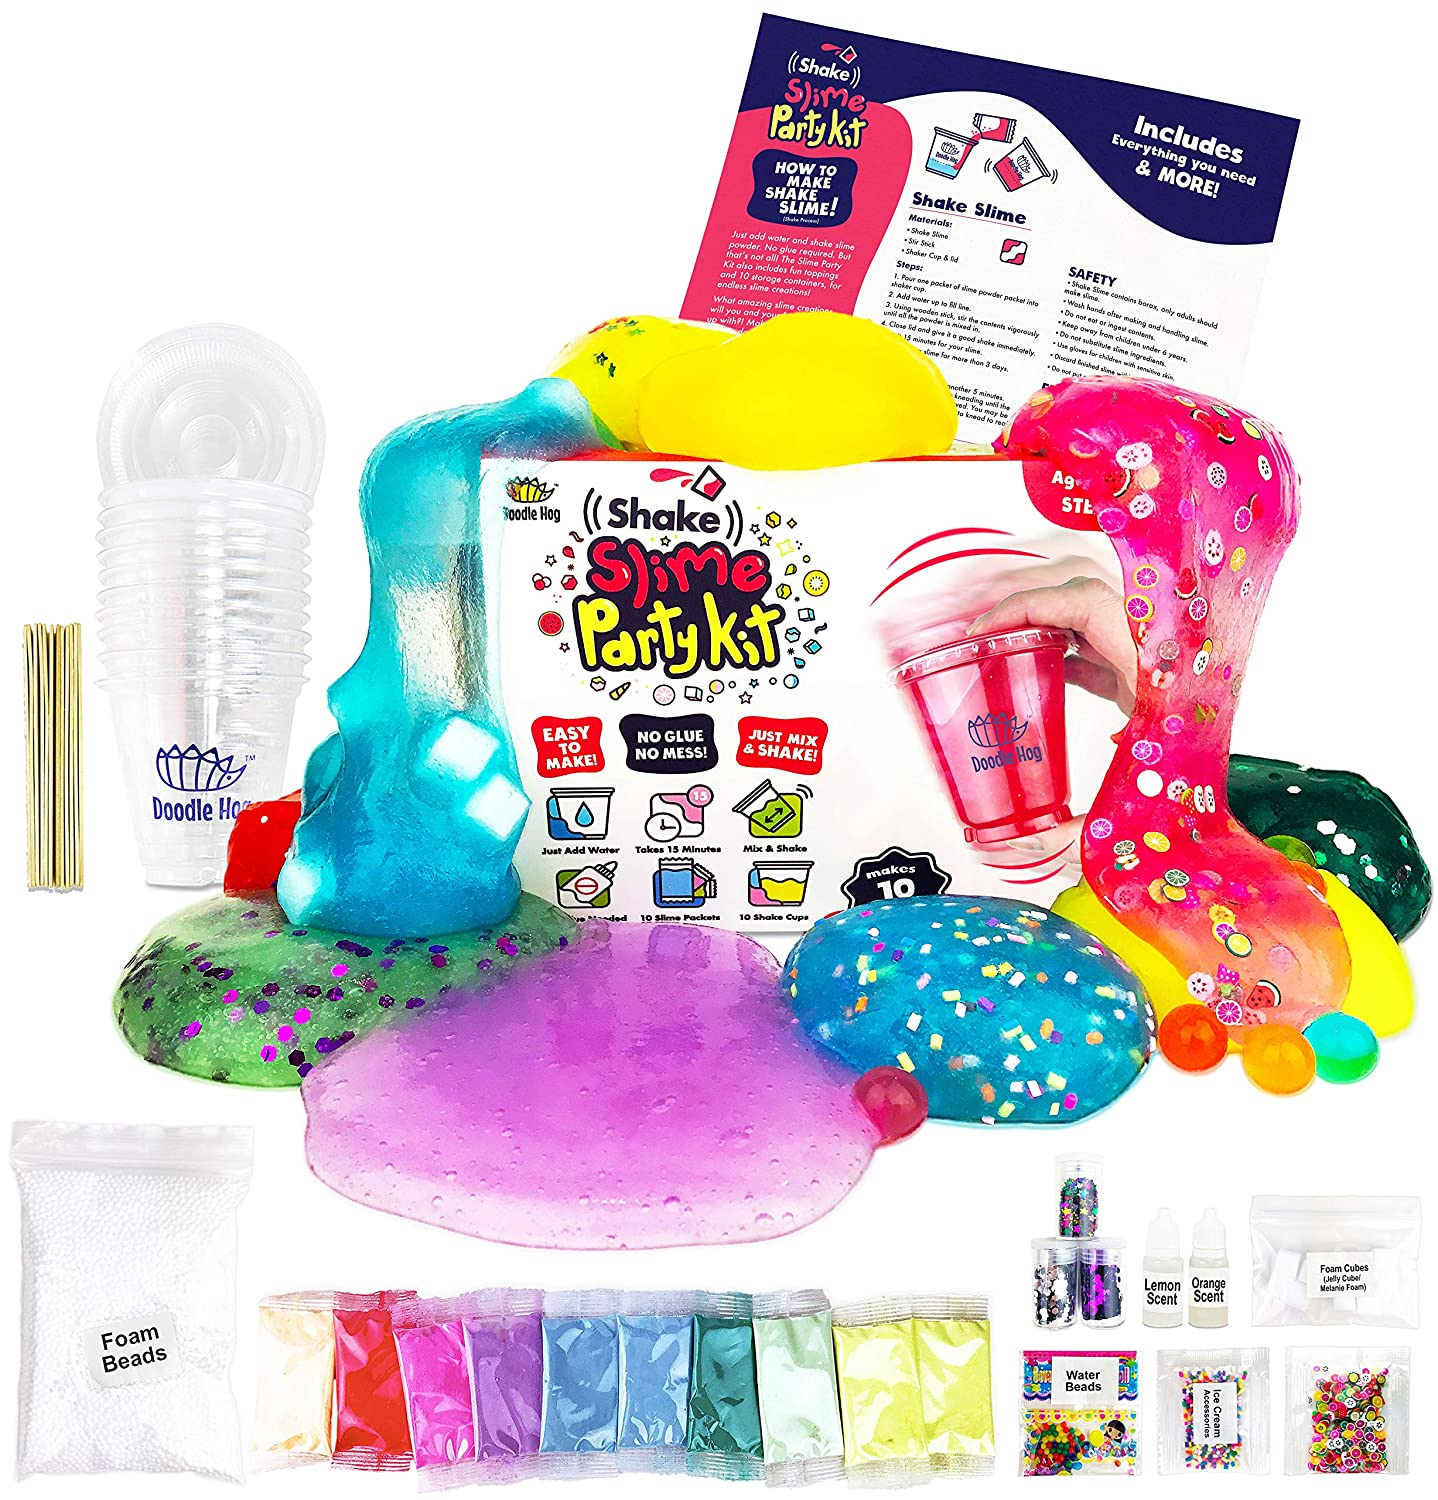 No Glue  Shake Slime Kit for Girls and Boys for 10 Kinds of Shaker Slime   No Mess  Just Add Water, Mix, and Shake  Includes Fun Toppings and  Take-Home